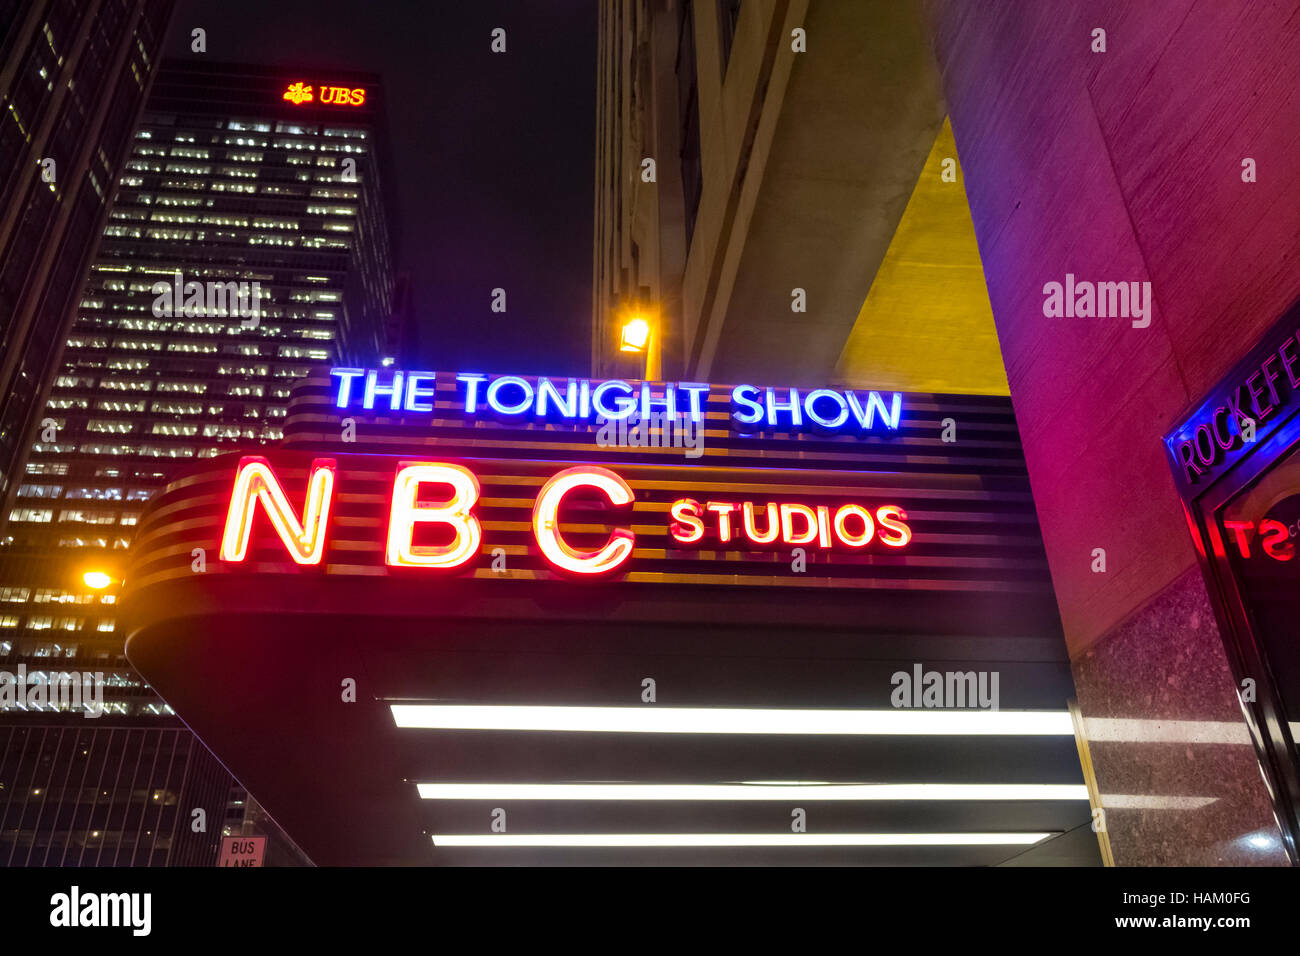 NBC Studios marquee for The Tonight Show in New York City - Stock Image